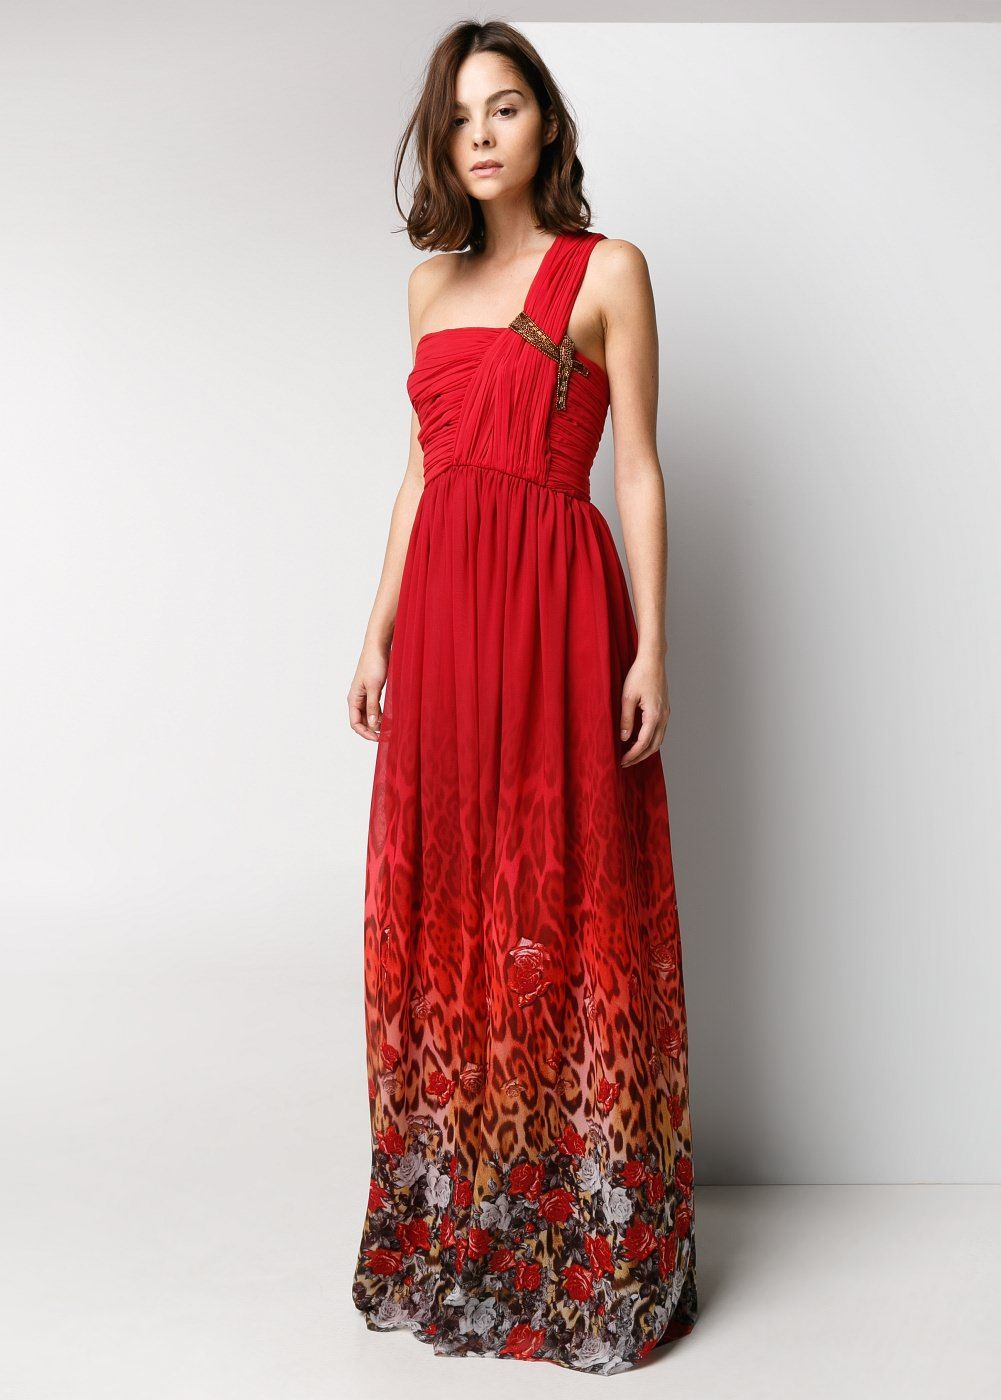 Ombré gown woman ombre gown gowns and chiffon gown